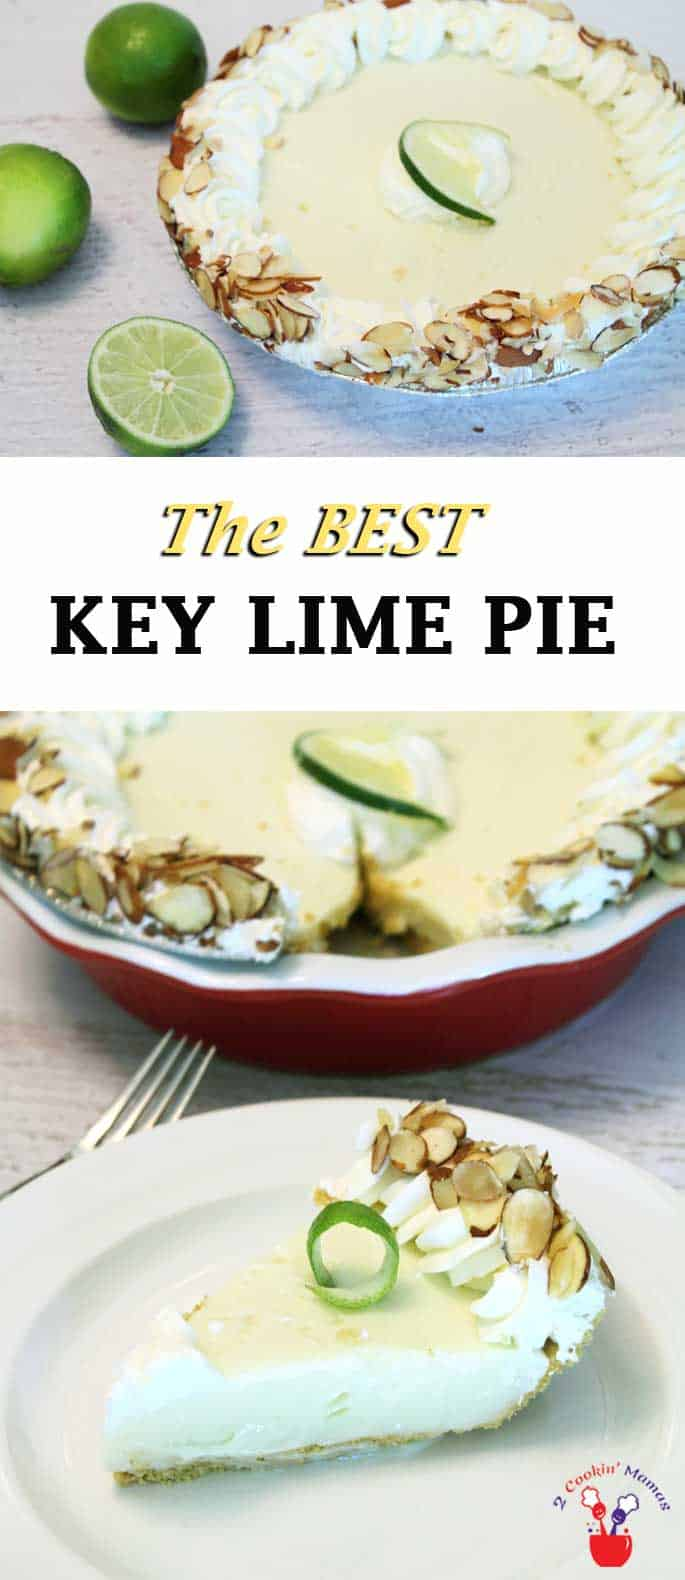 Key Lime Pie | 2 Cookin Mamas Take a bite out of this slightly tart & creamy key lime pie and you will think you're in the tropics! It's super easy to make & a Florida Keys favorite.